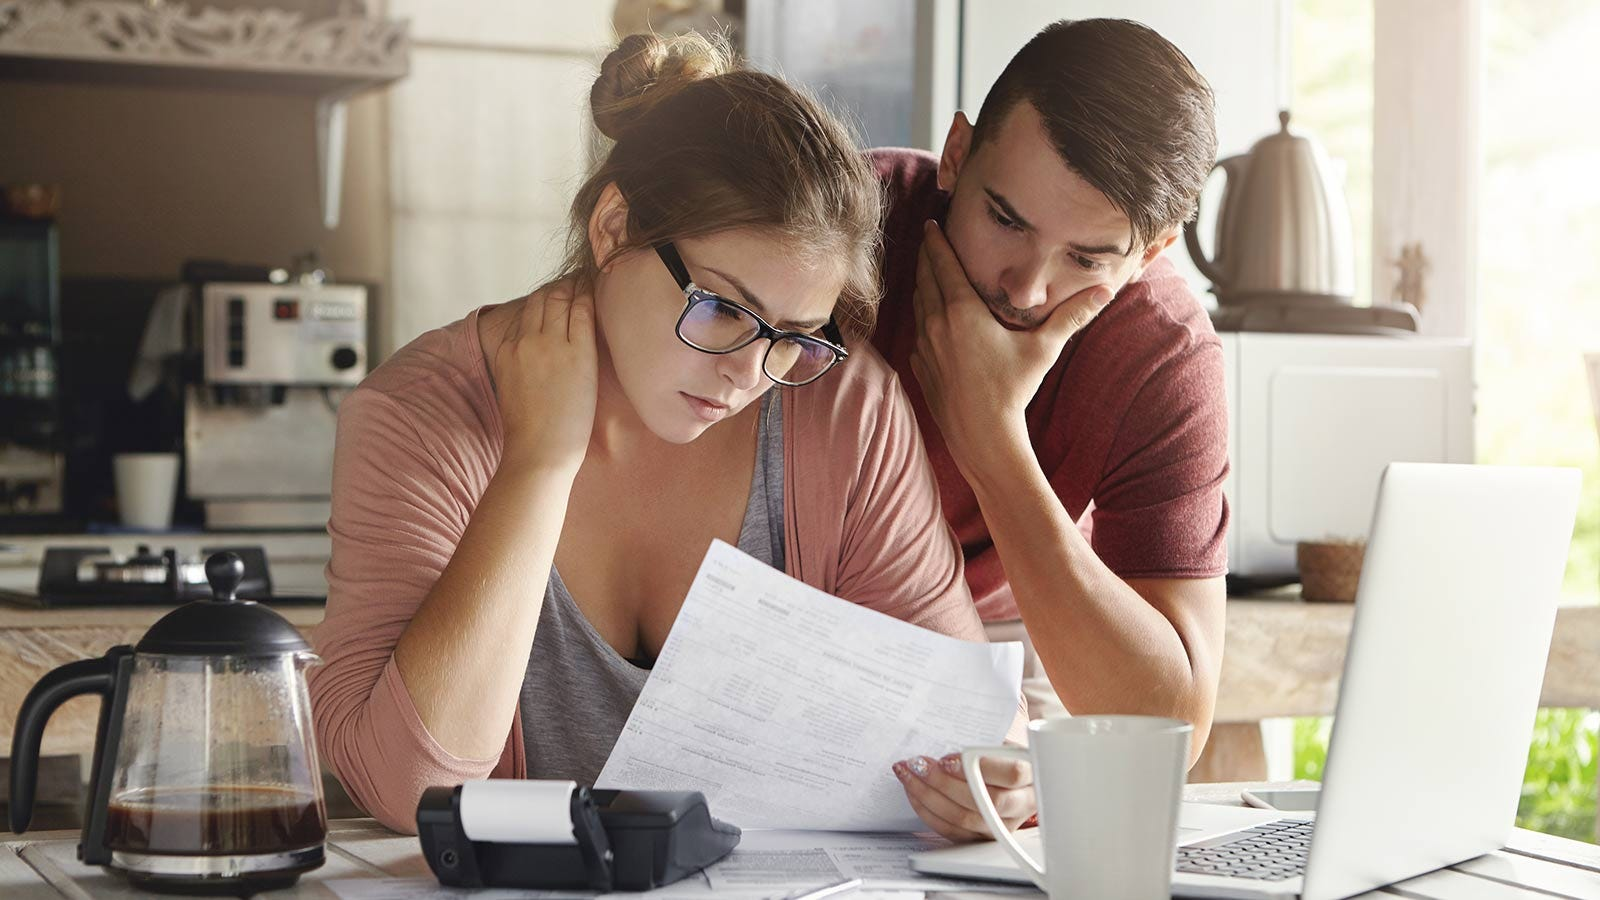 A man and woman looking at their bills with a calculator and laptop nearby.